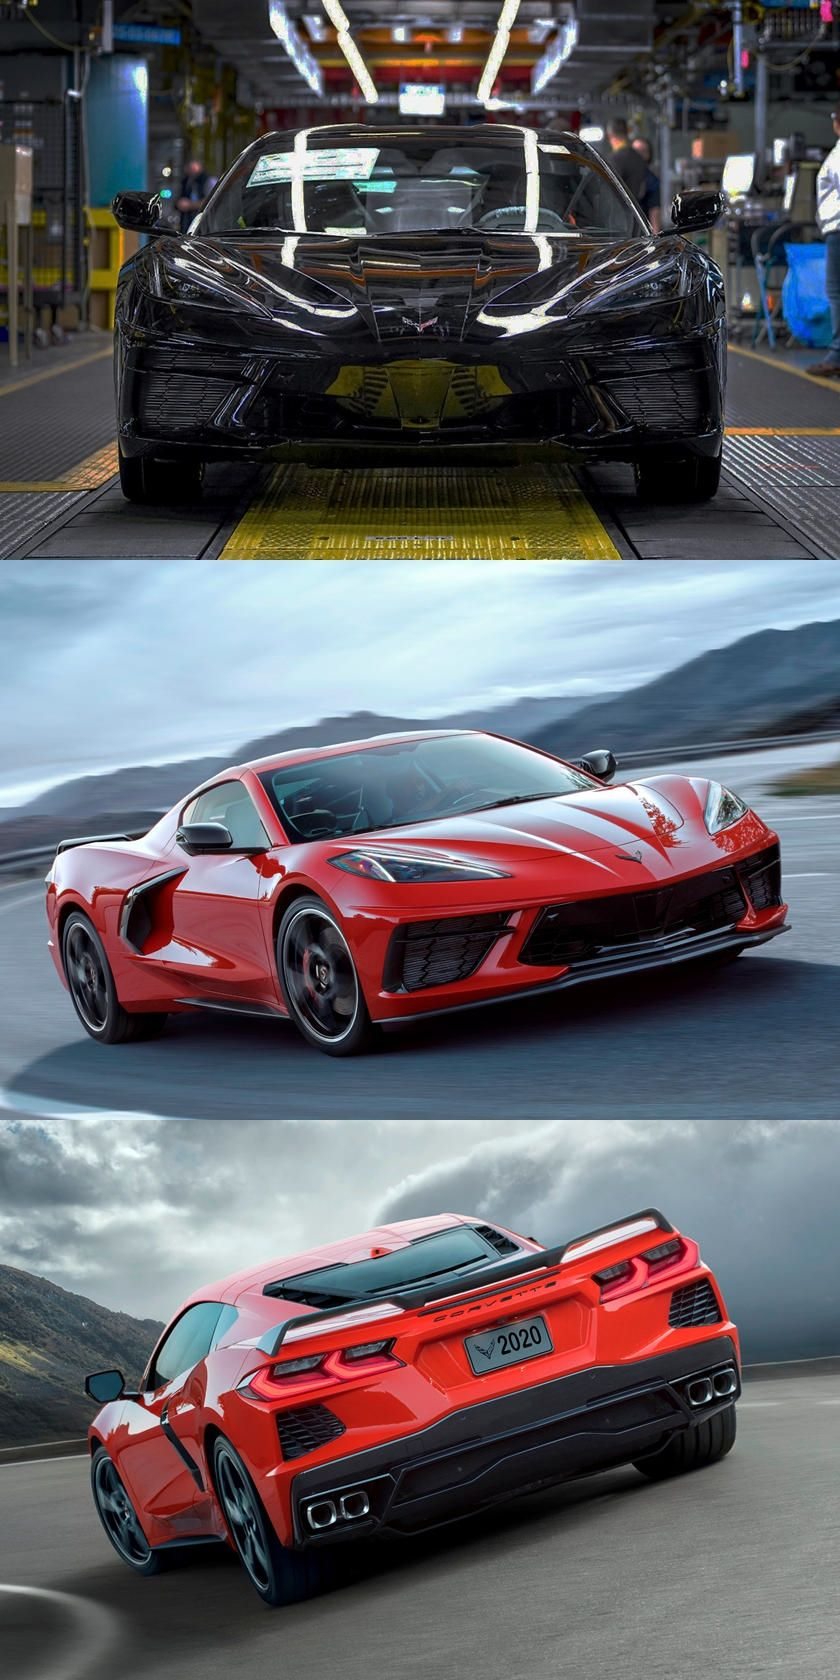 Finally! C8 Corvette Has Officially Started Production in